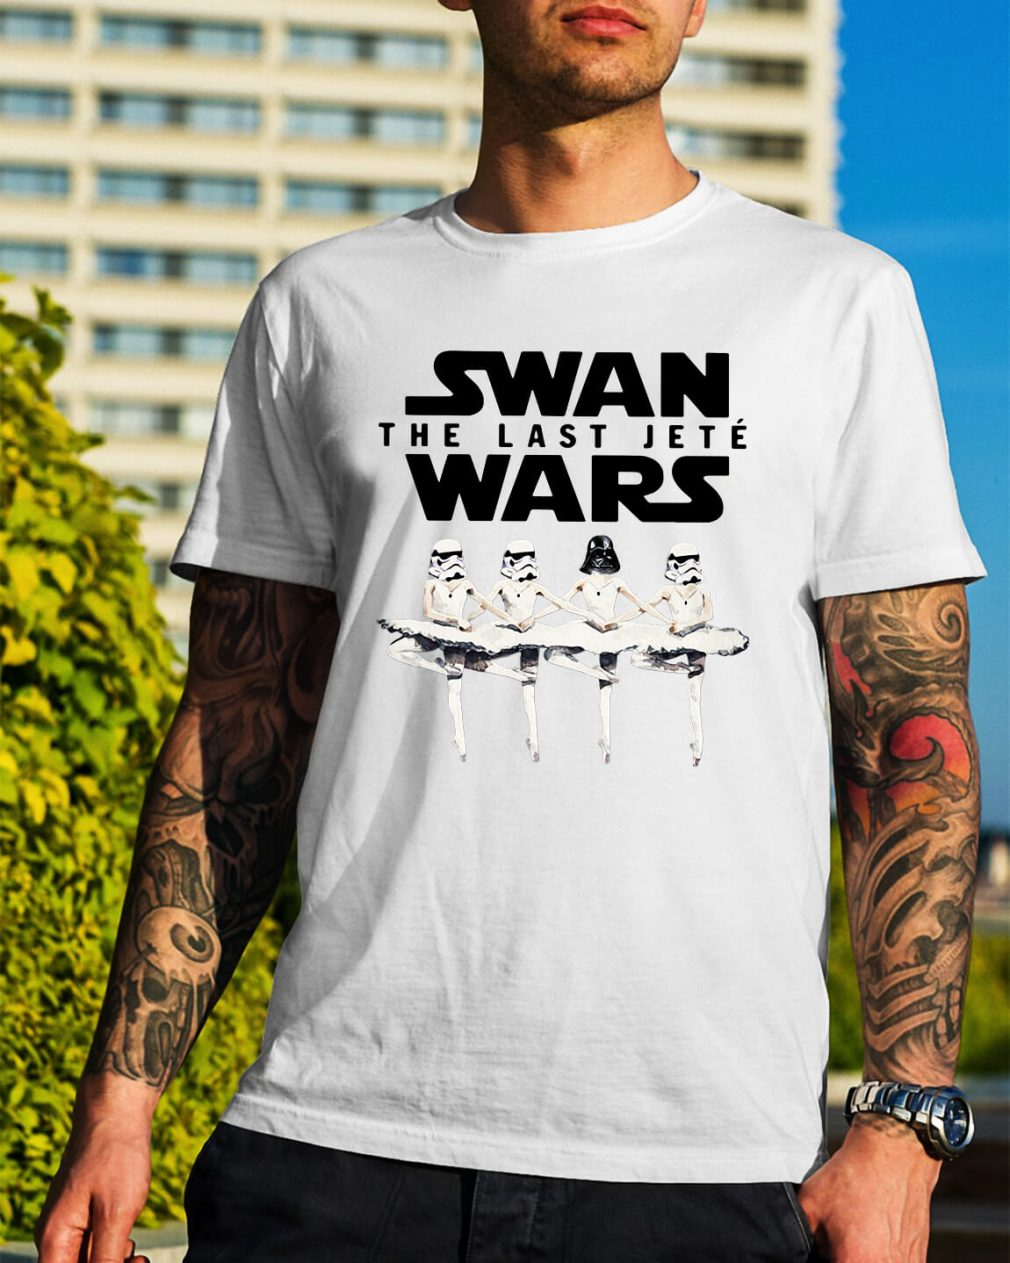 Star Wars swan the last Jeté Wars shirt